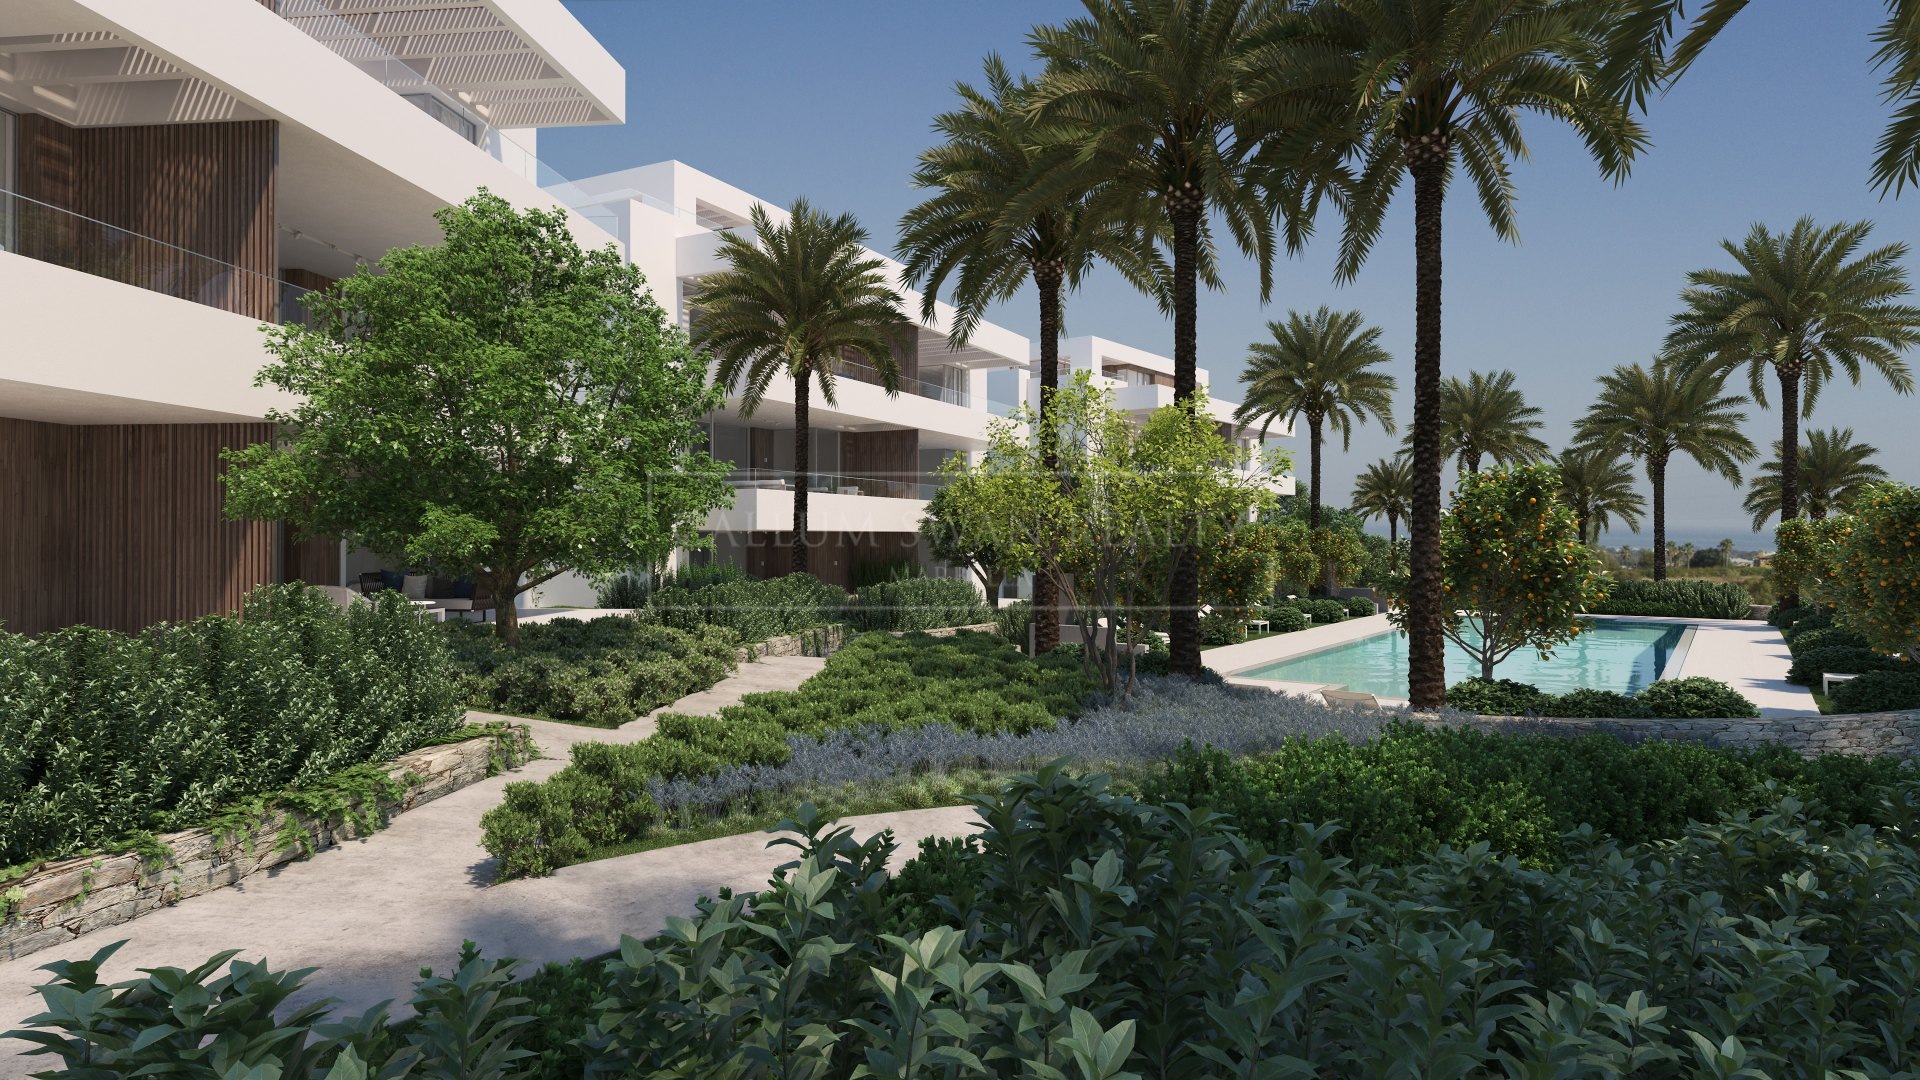 Brand new luxury apartment in a gated modern complex in Benahavis with stunning views